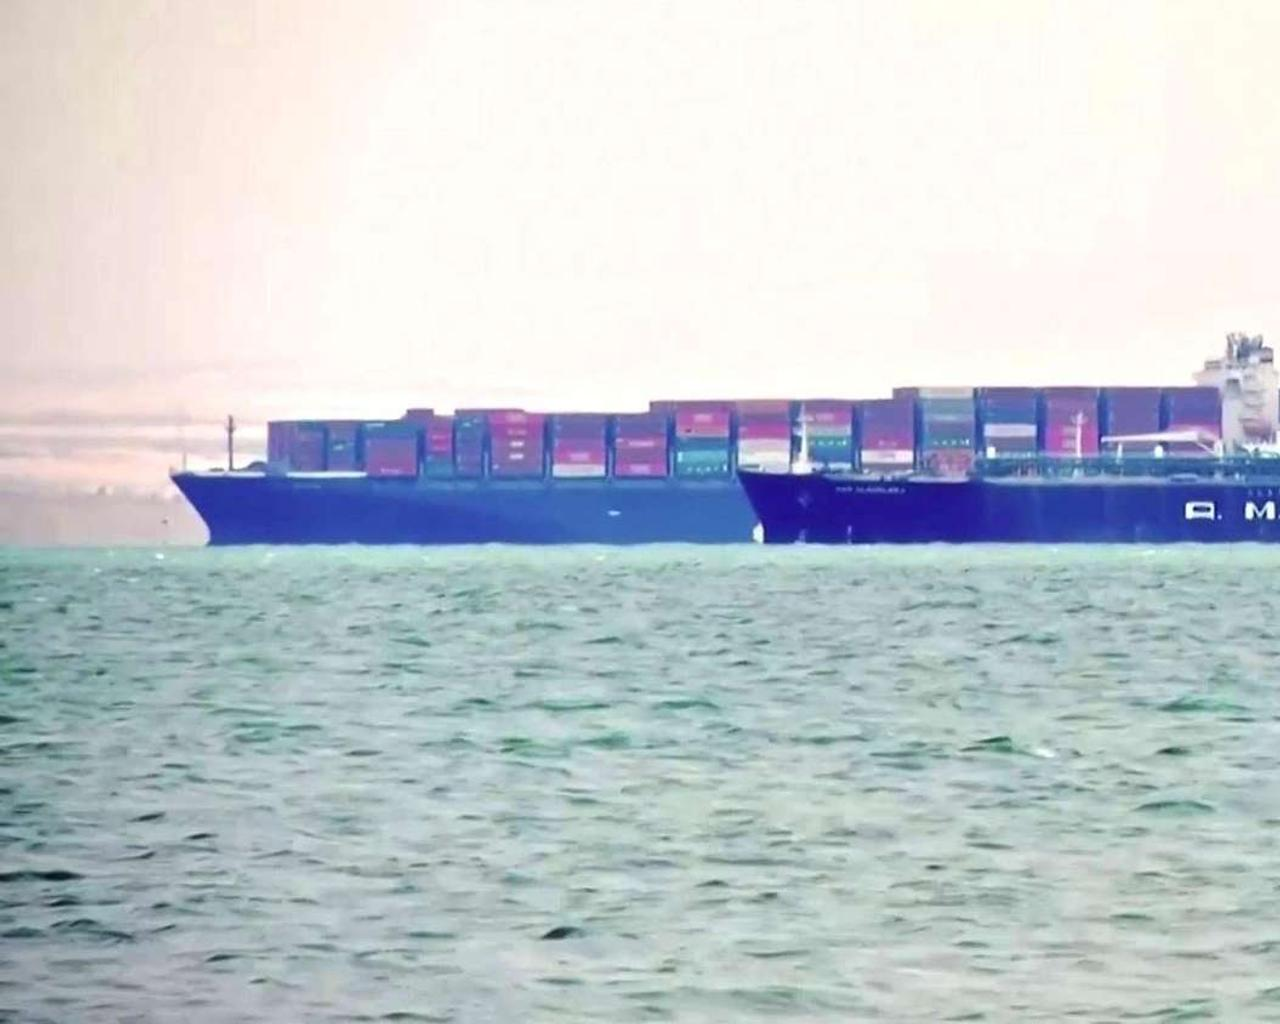 The Suez Canal is open again, but the impact of the Ever Given saga will be felt for a while